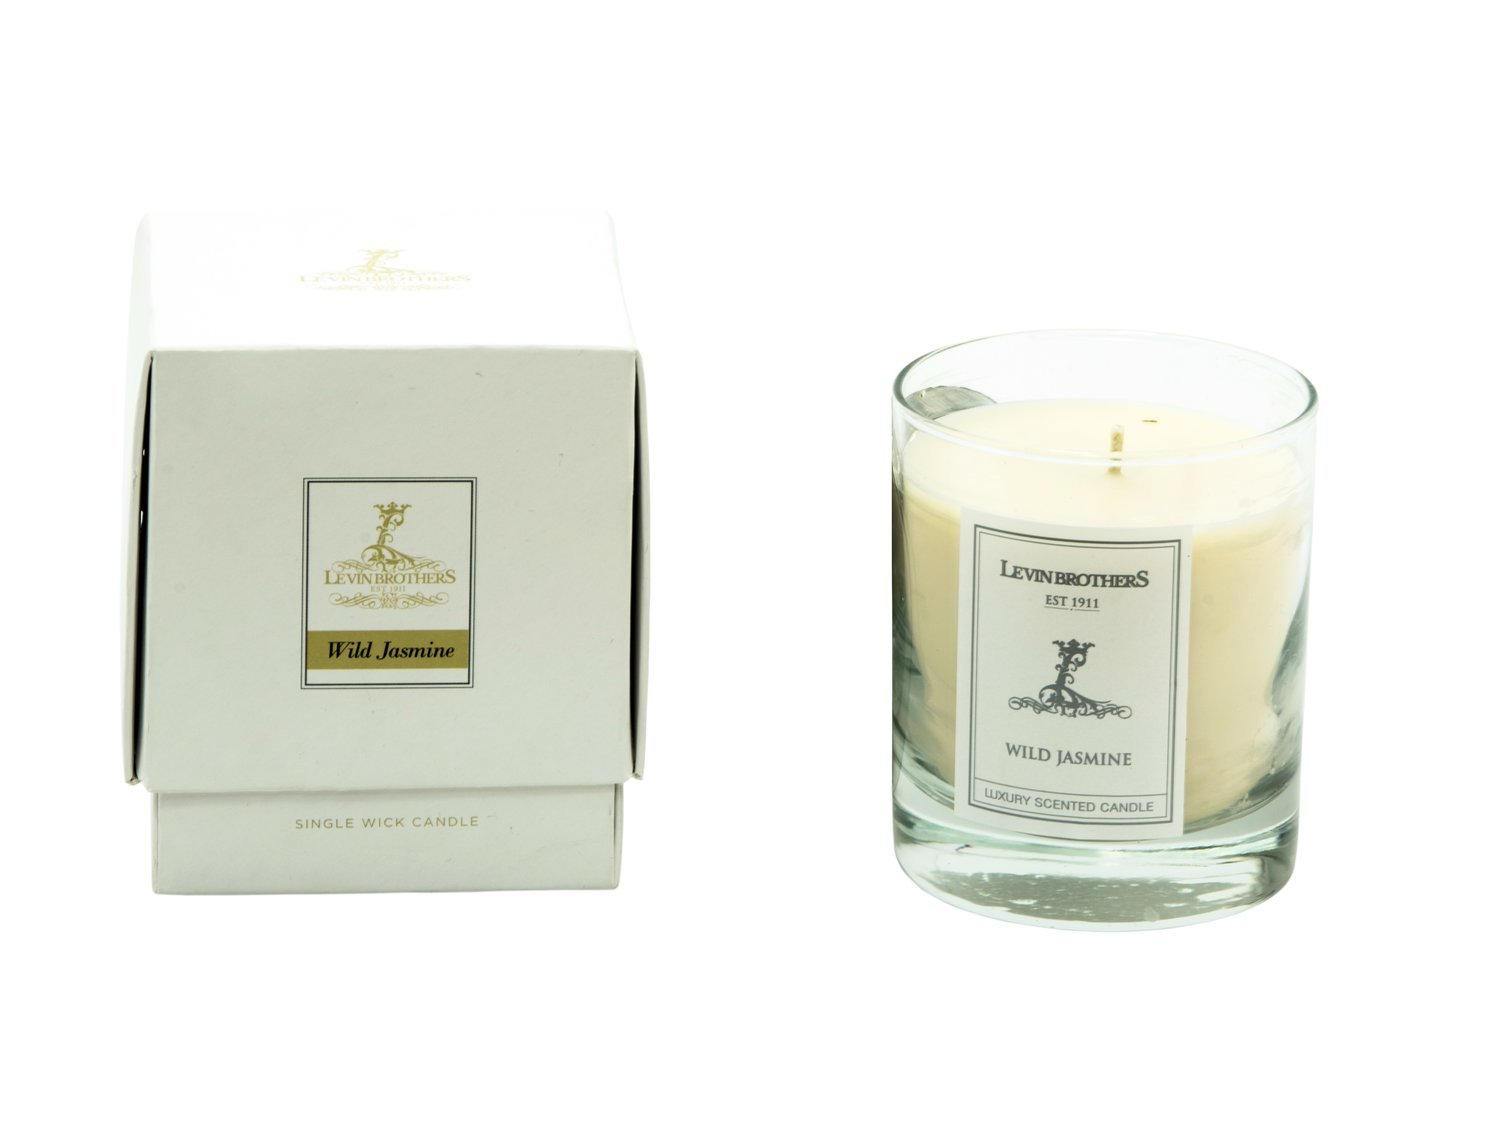 Wild Jasmine Scented Candle